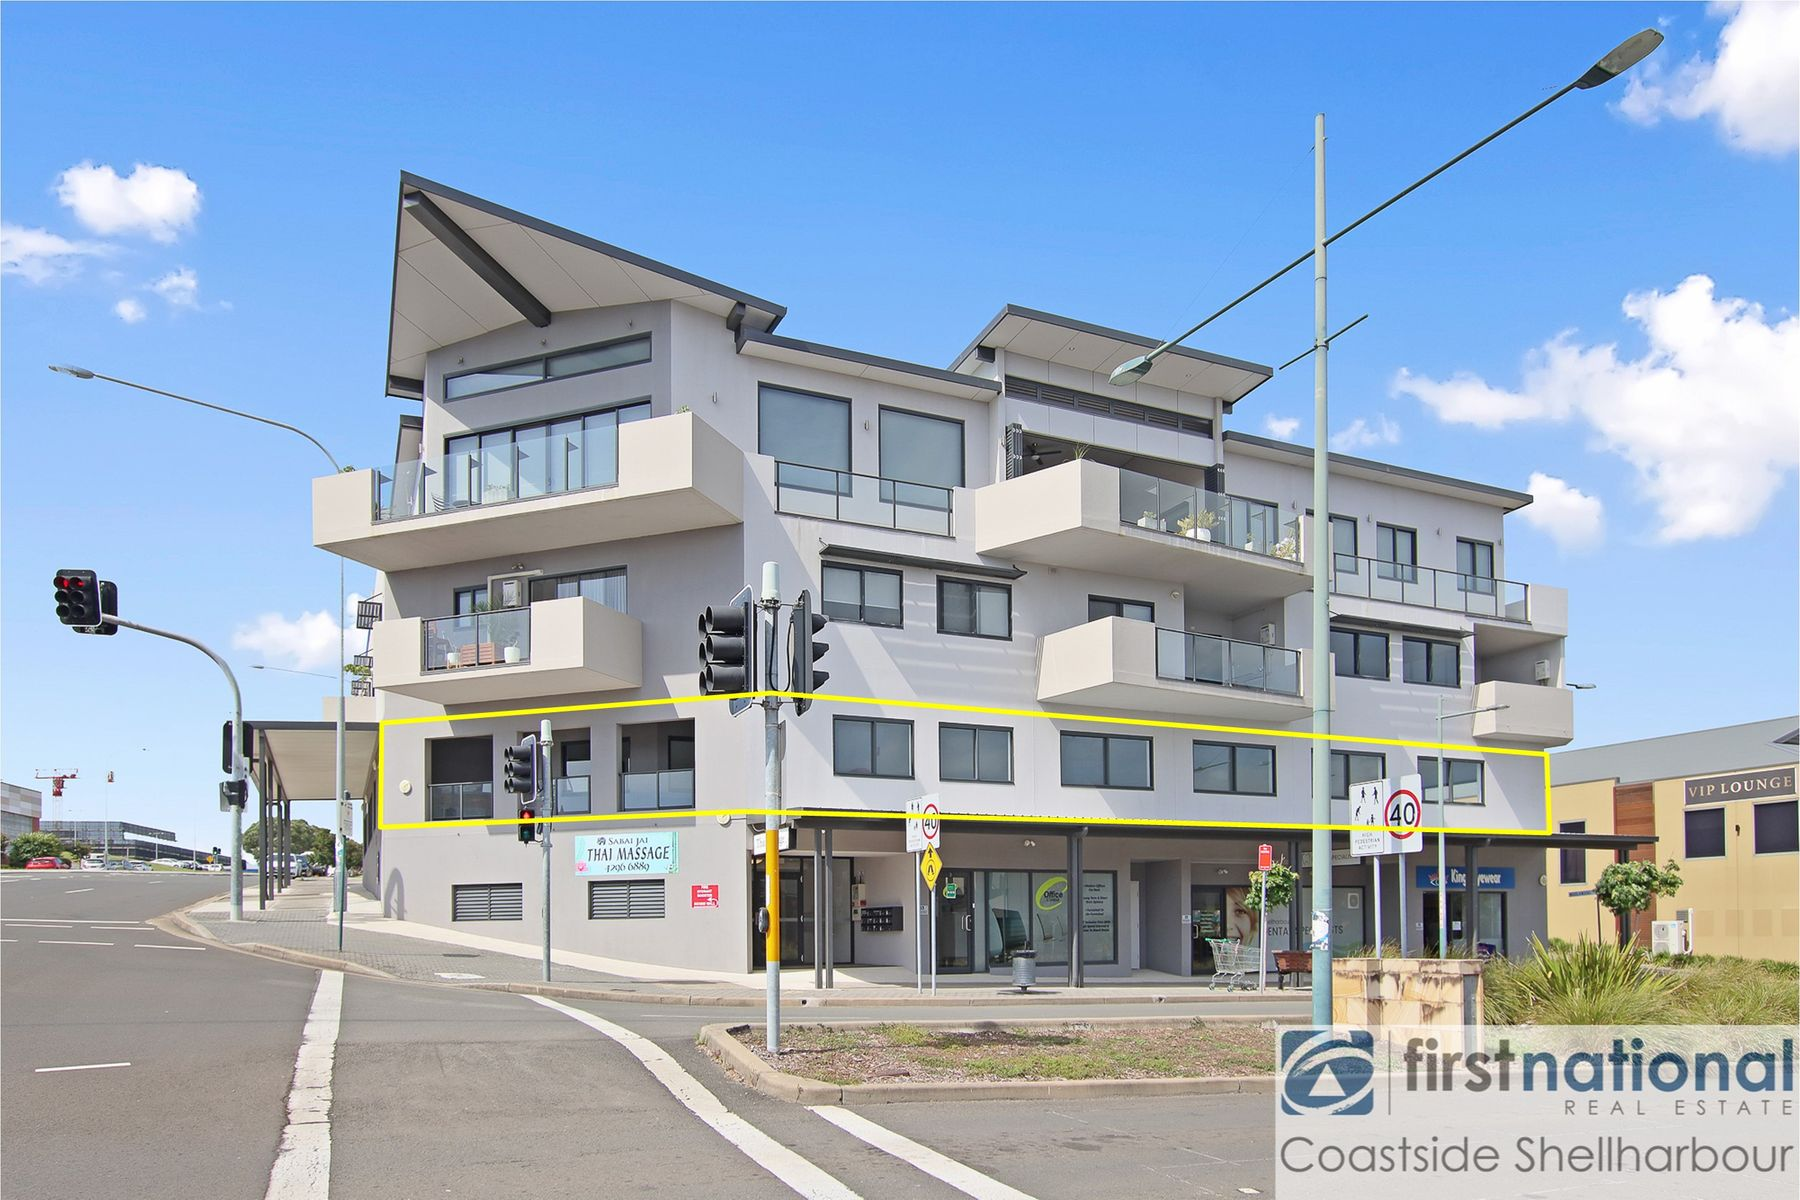 6/1 Memorial Drive, Shellharbour City Centre, NSW 2529